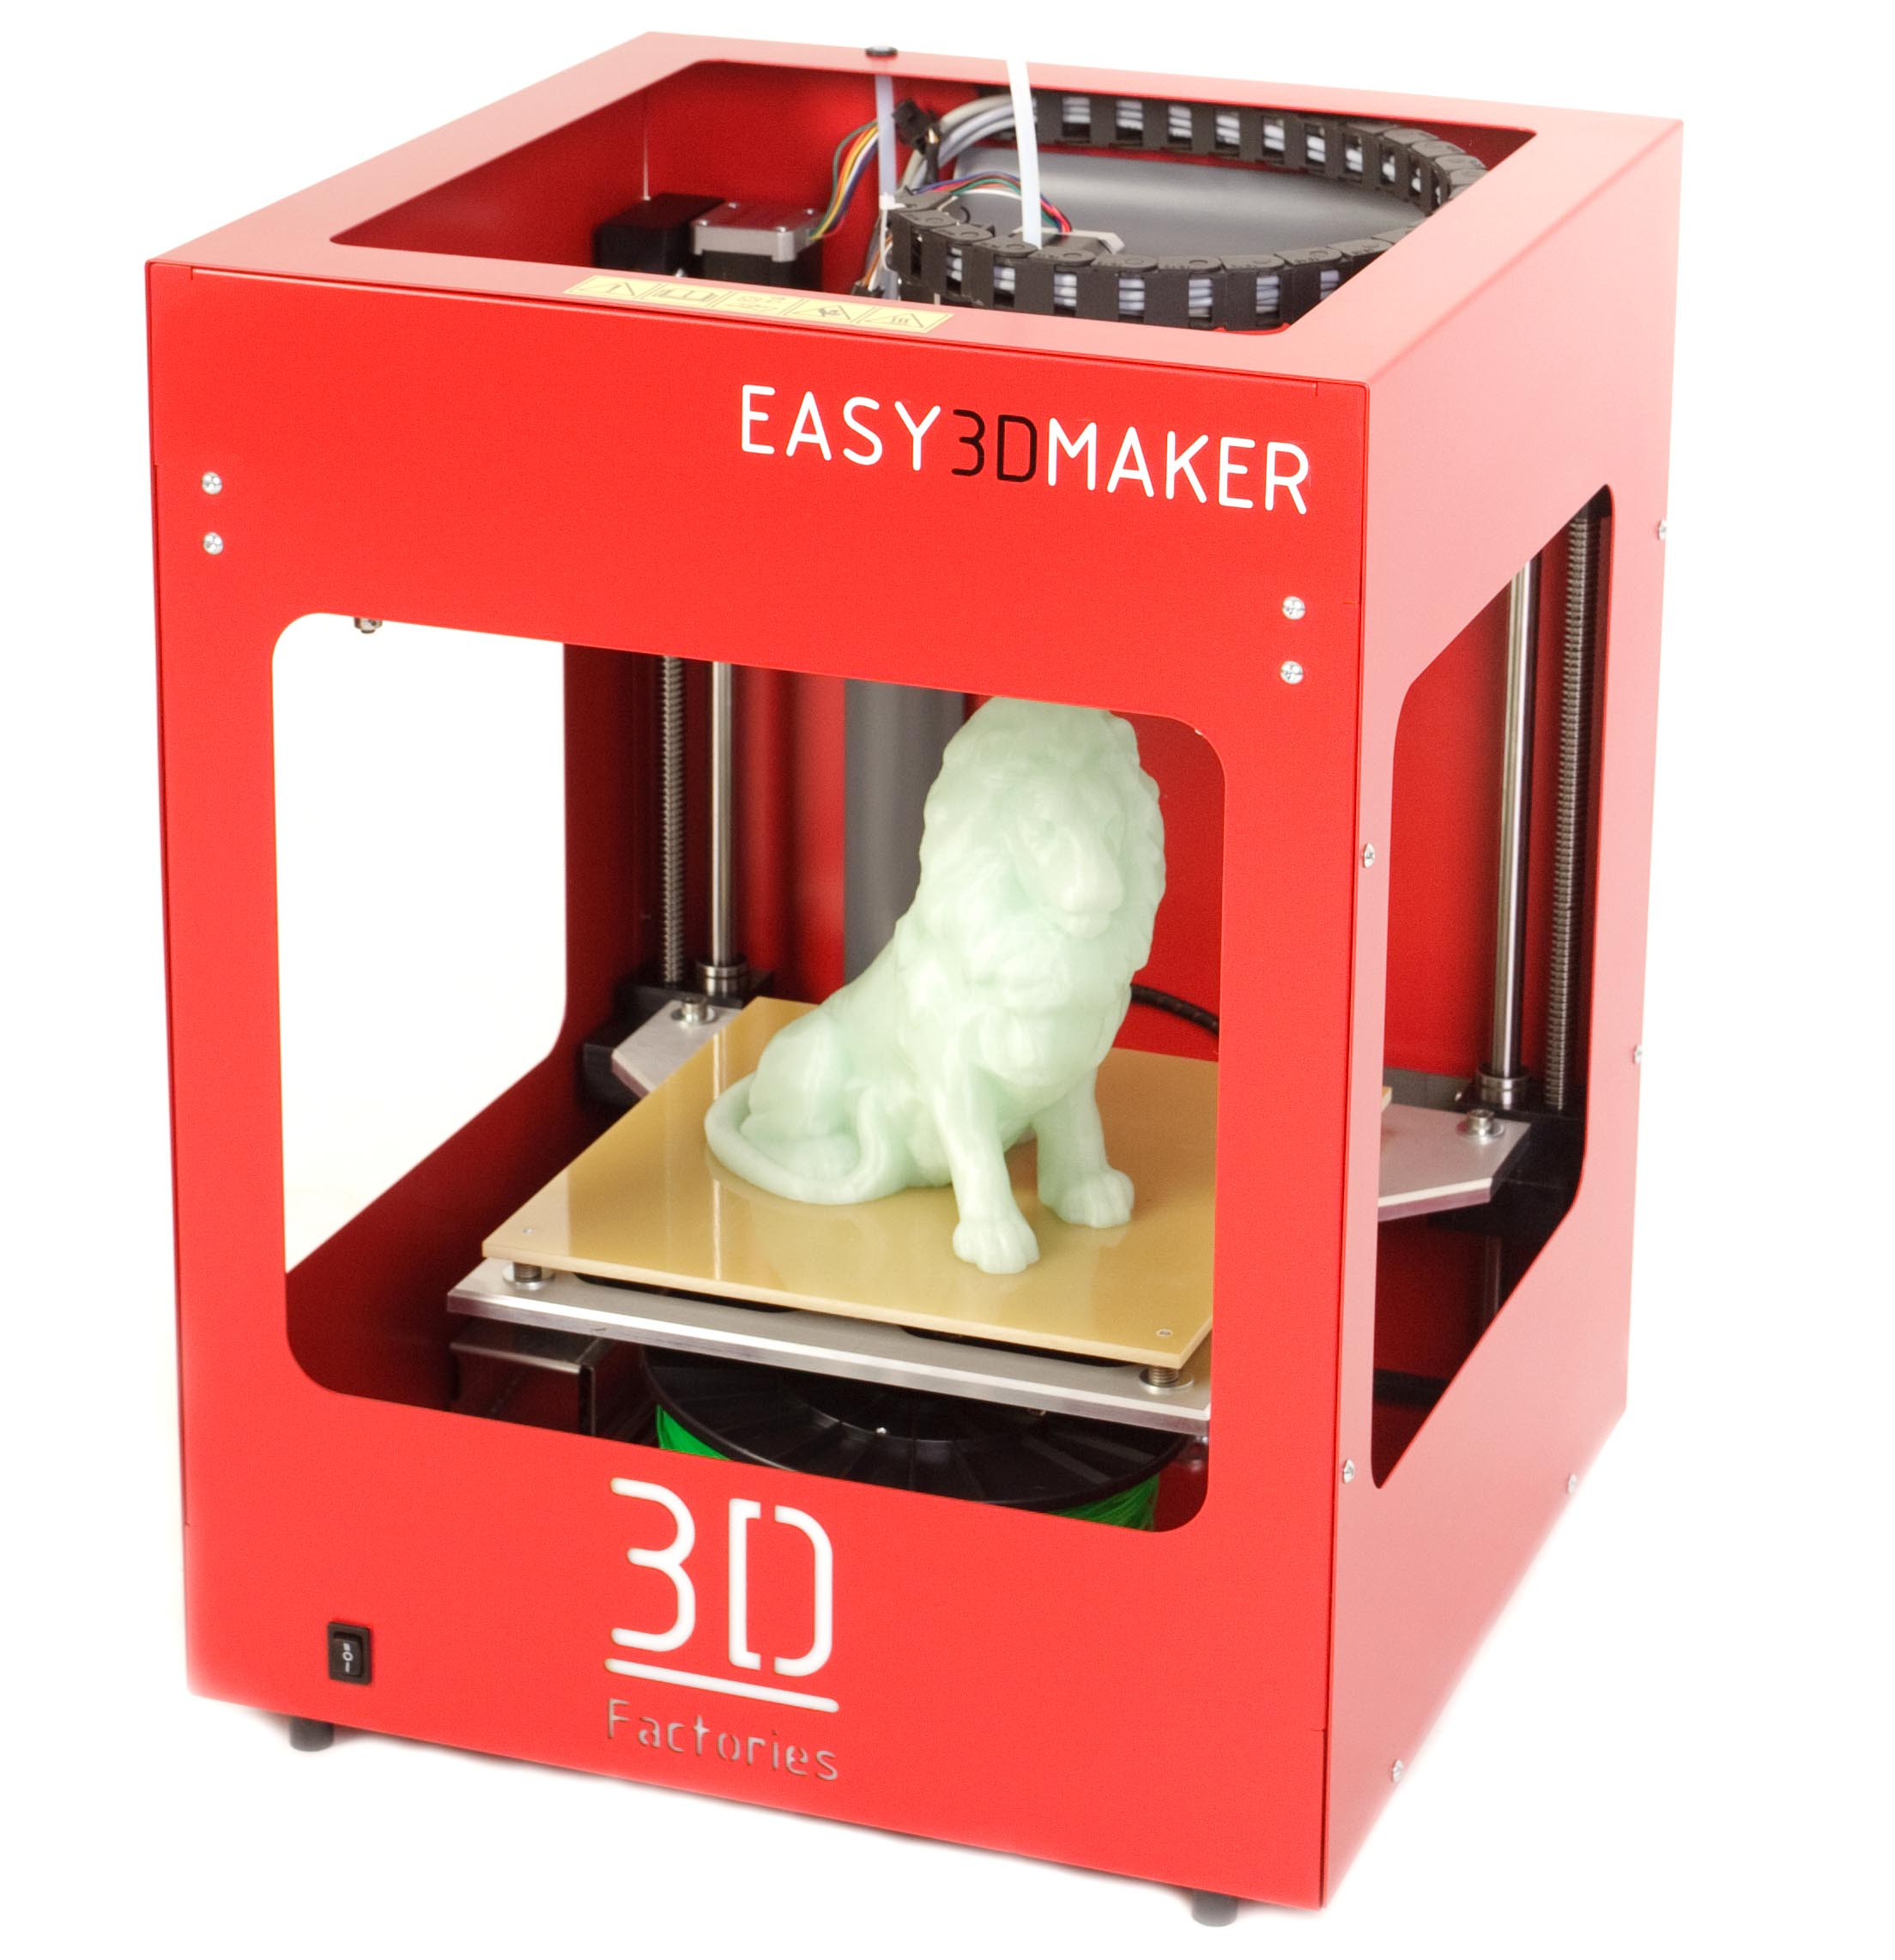 Easy3DMaker. Easy3DMaker - 3D Factories. Easy3DMaker - Aroja. Easy3DMaker 0,3 mm. Easy3DMaker 0,5 mm. Easy3DMaker layer 0,08mm. Easy3DMaker layer 0,125mm.